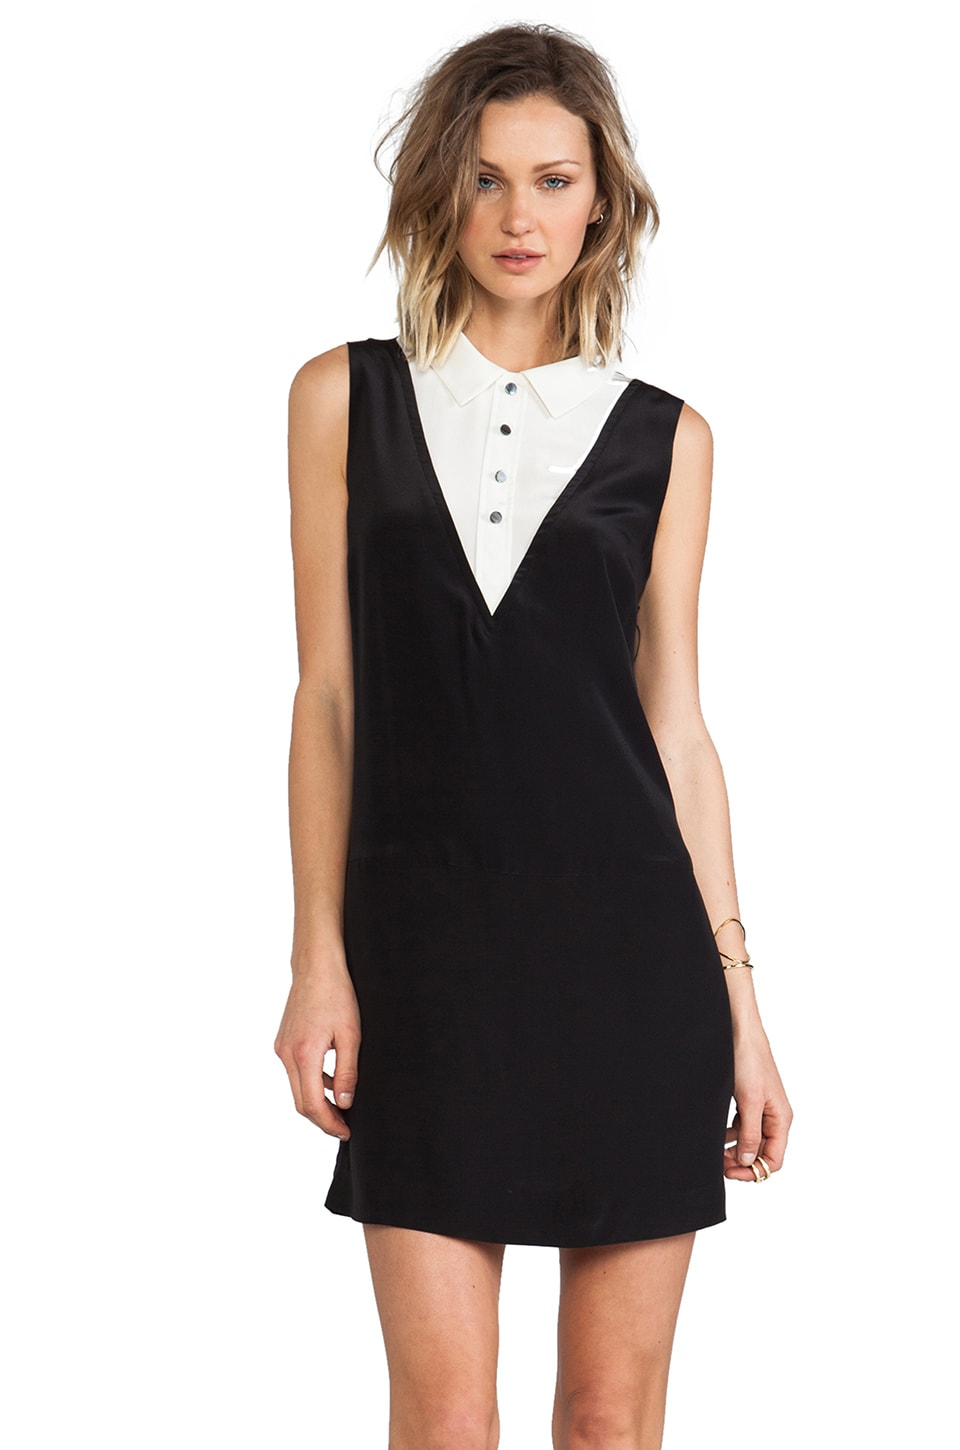 Marc by Marc Jacobs Frances Silk Shift Dress in Black Multi